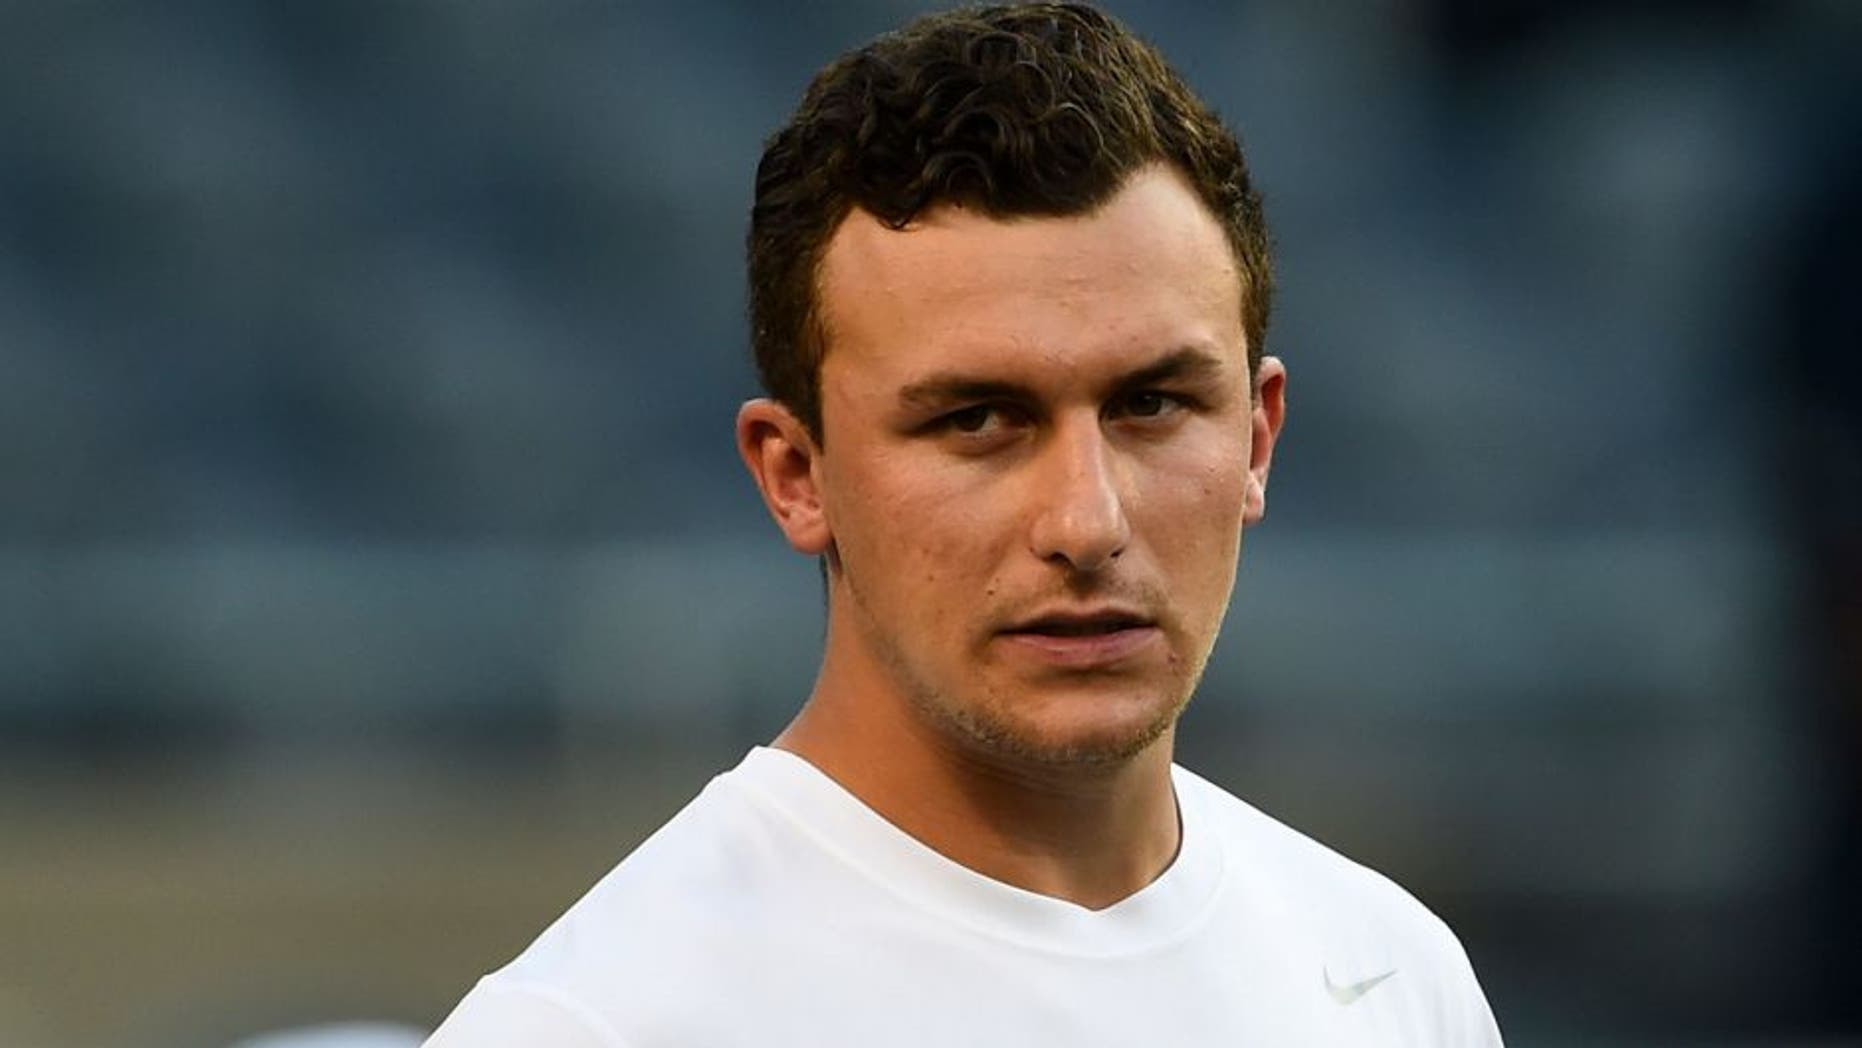 Sep 3, 2015; Chicago, IL, USA; Cleveland Browns quarterback Johnny Manziel (2) stretches before the game against the Chicago Bears at Soldier Field. Mandatory Credit: Mike DiNovo-USA TODAY Sports